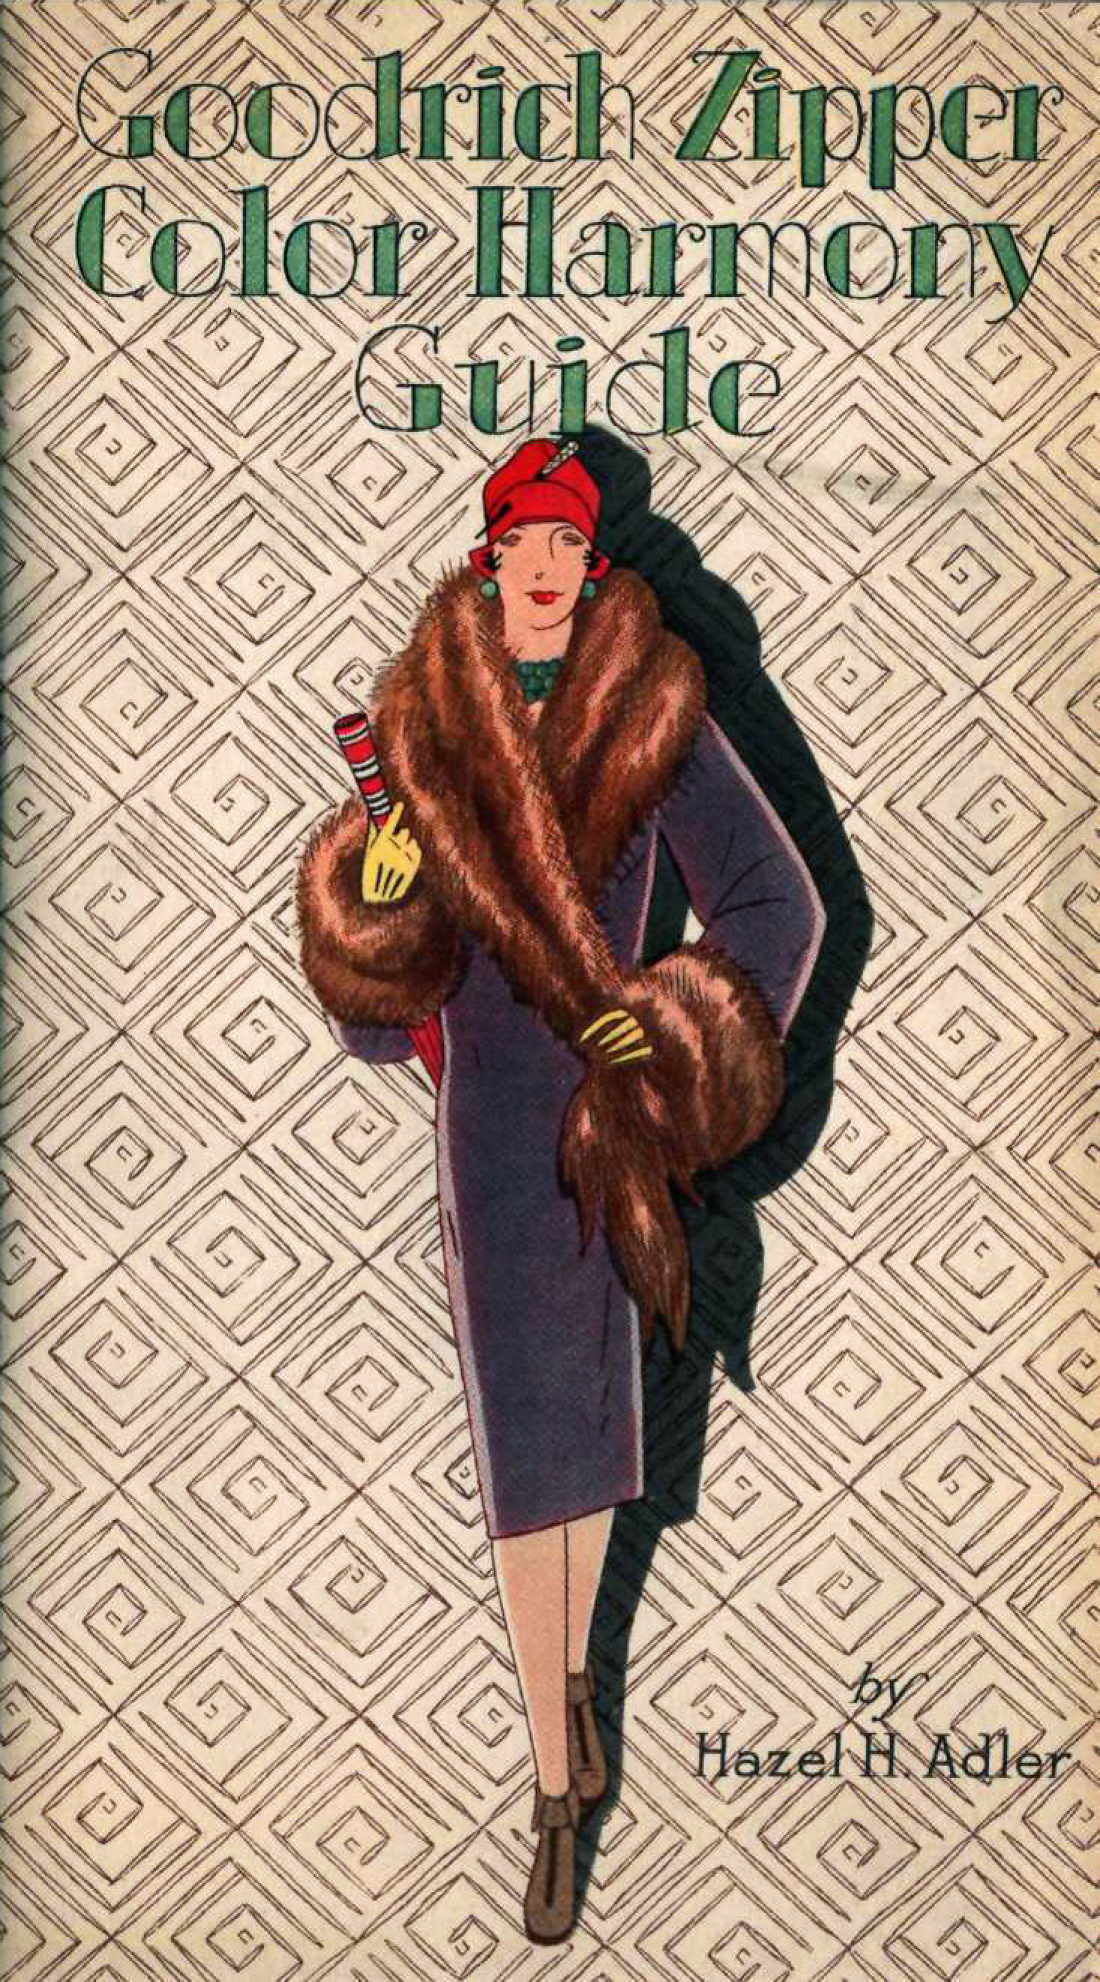 Cover of a 1927 catalog for zippered boots, featuring an illustration of a well-dressed woman.